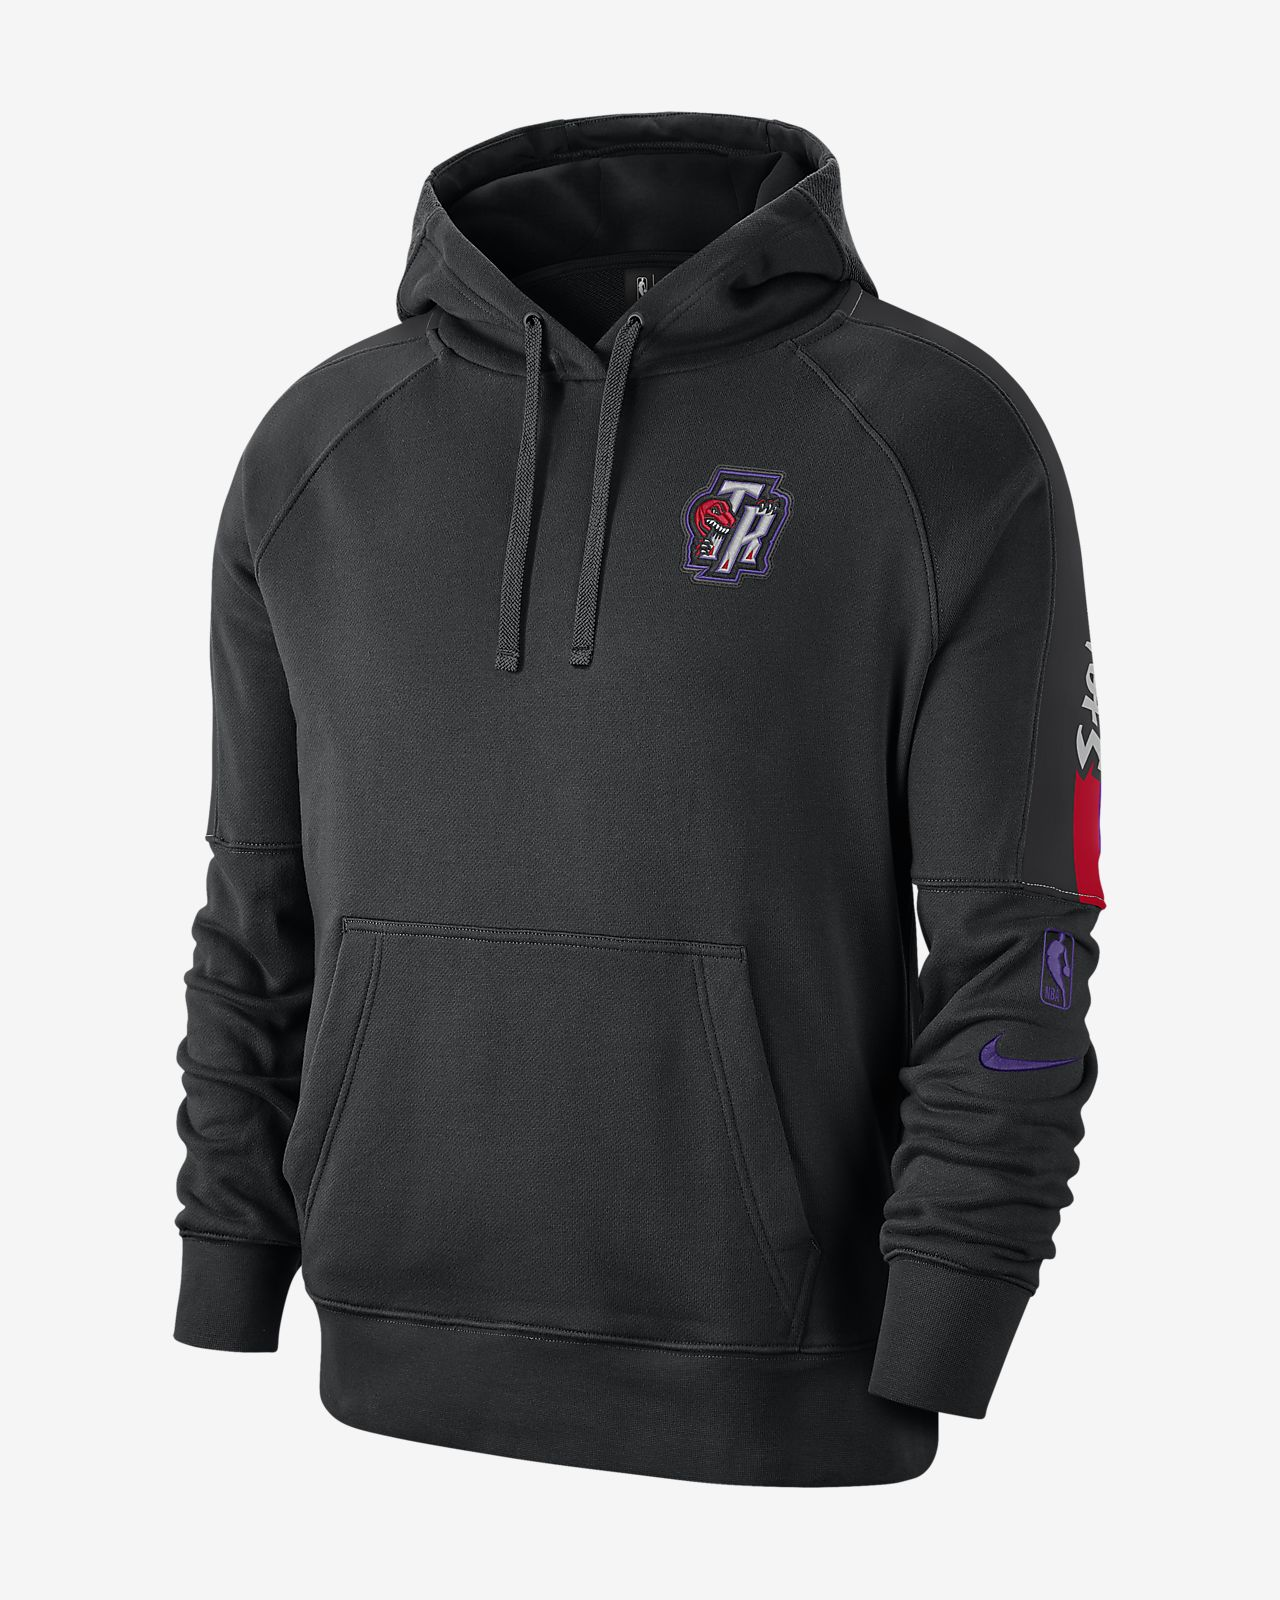 Raptors Courtside Classic Edition Men's Nike NBA Hoodie